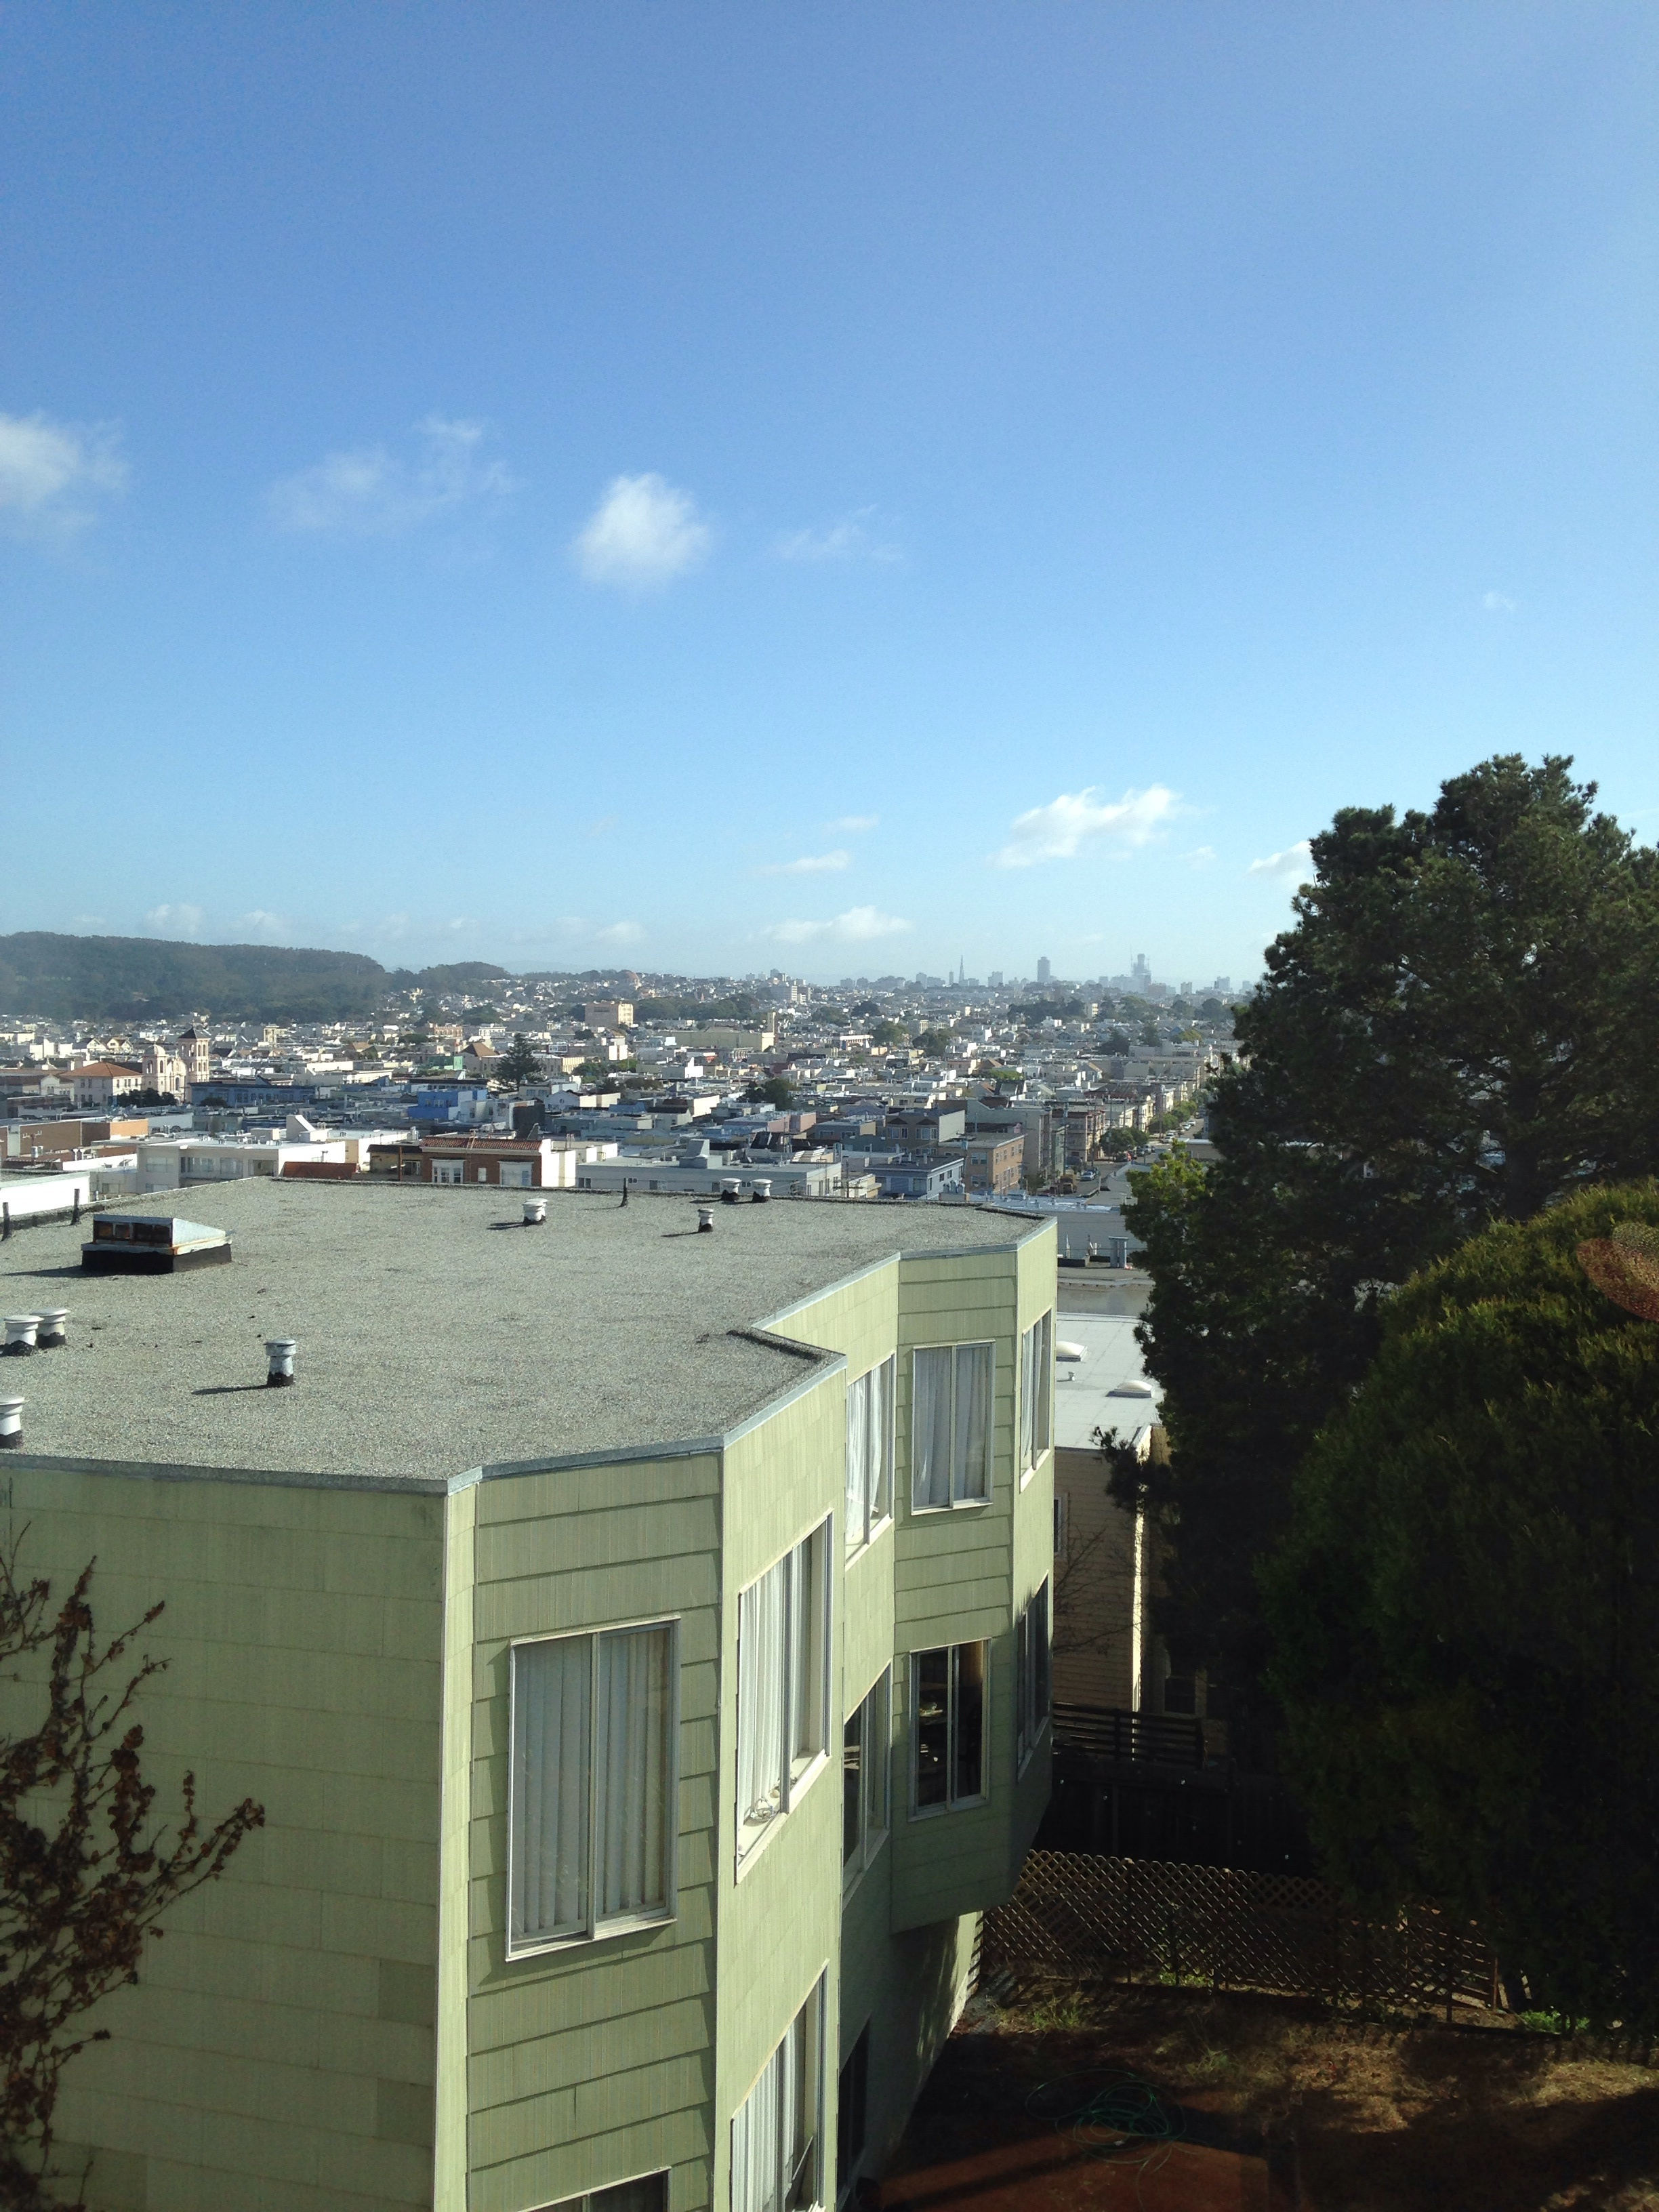 View from 28th and Anza